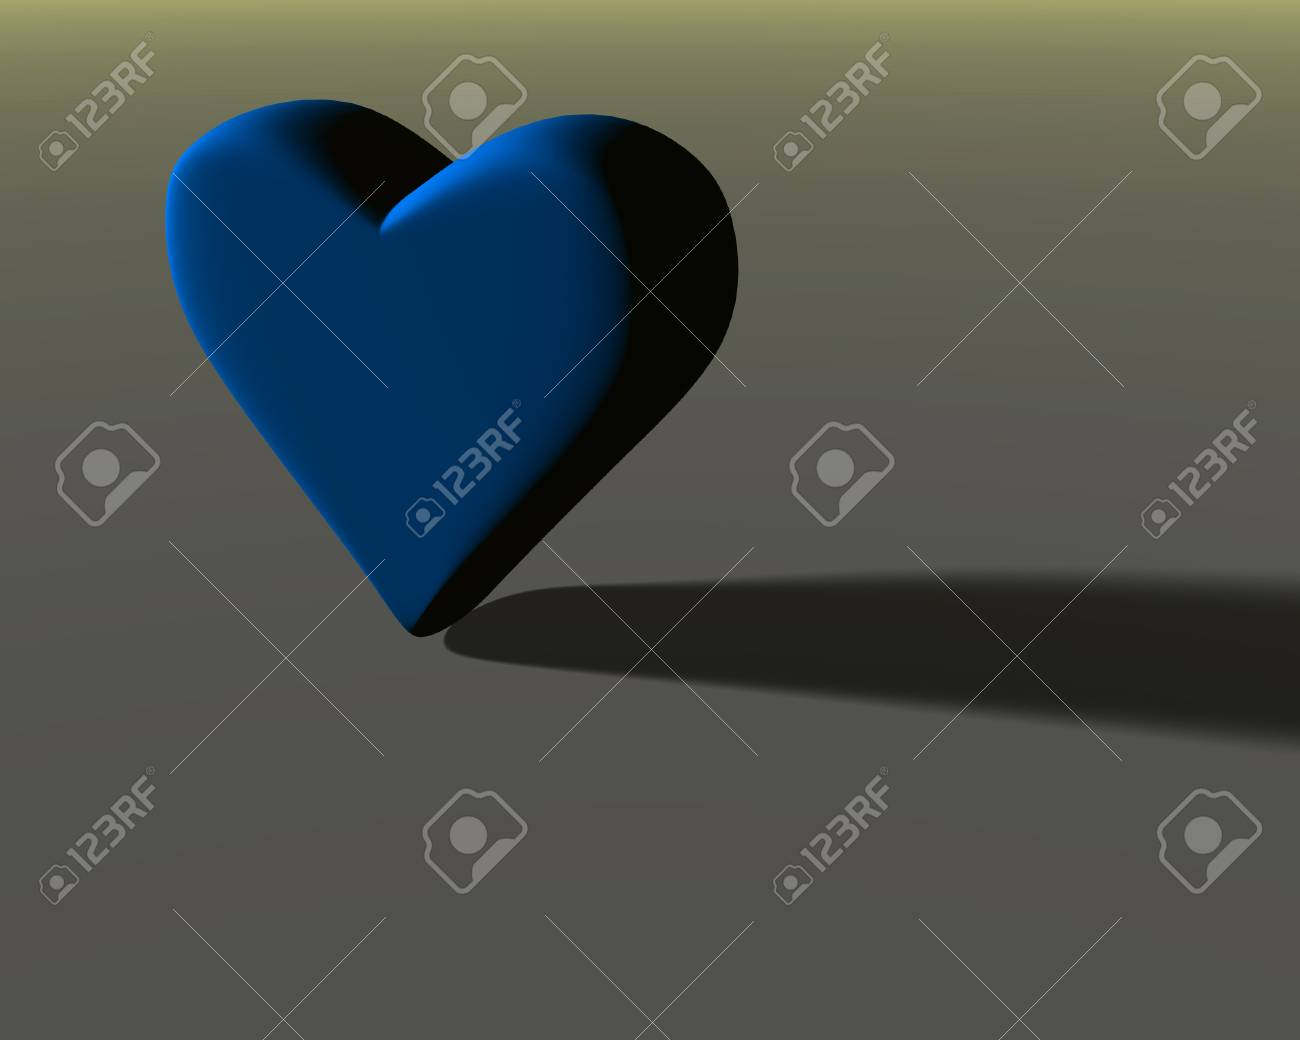 Lit Model Blue 3d Heart Model With Mat Surface Lit From The Side With